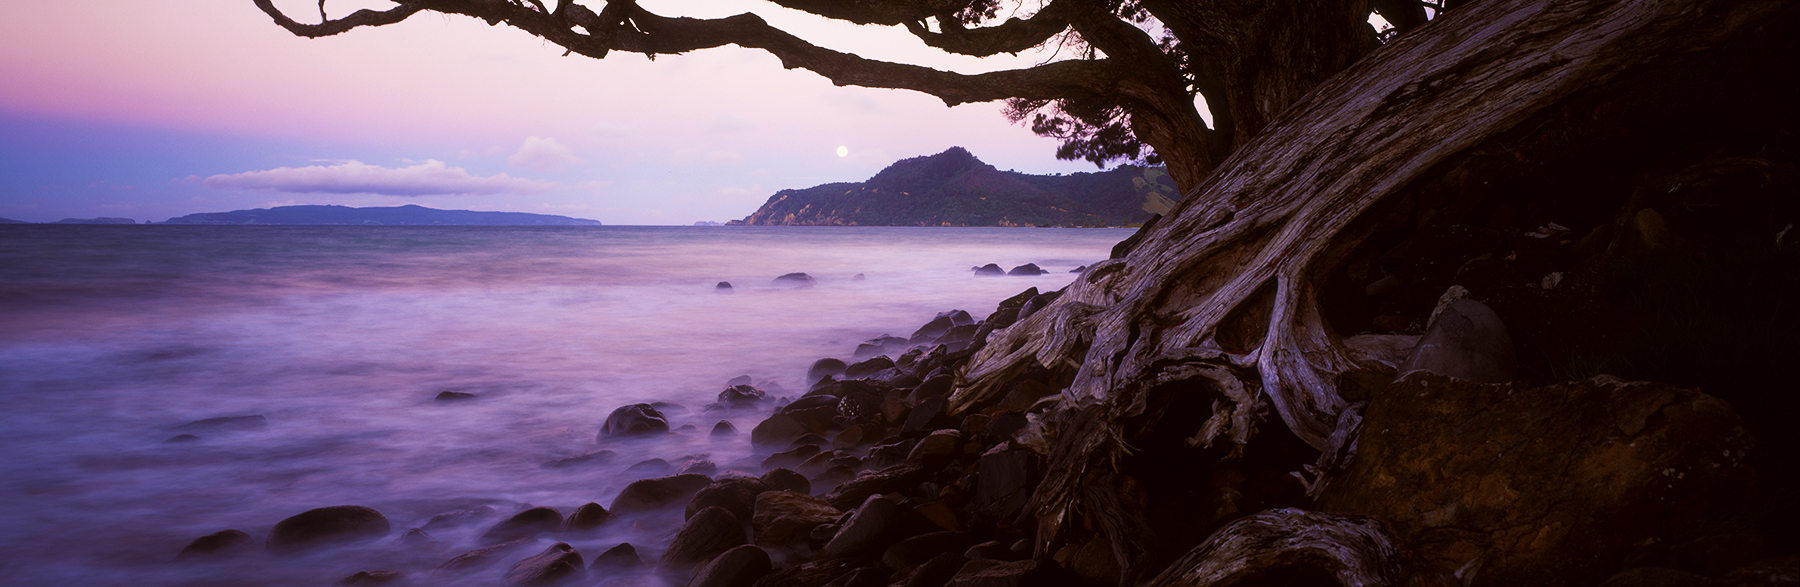 Kuaotunu Beach, Coromandel Peninsula, New Zealand. A Limited Edition Fine Art Landscape Photograph by Richard Hume